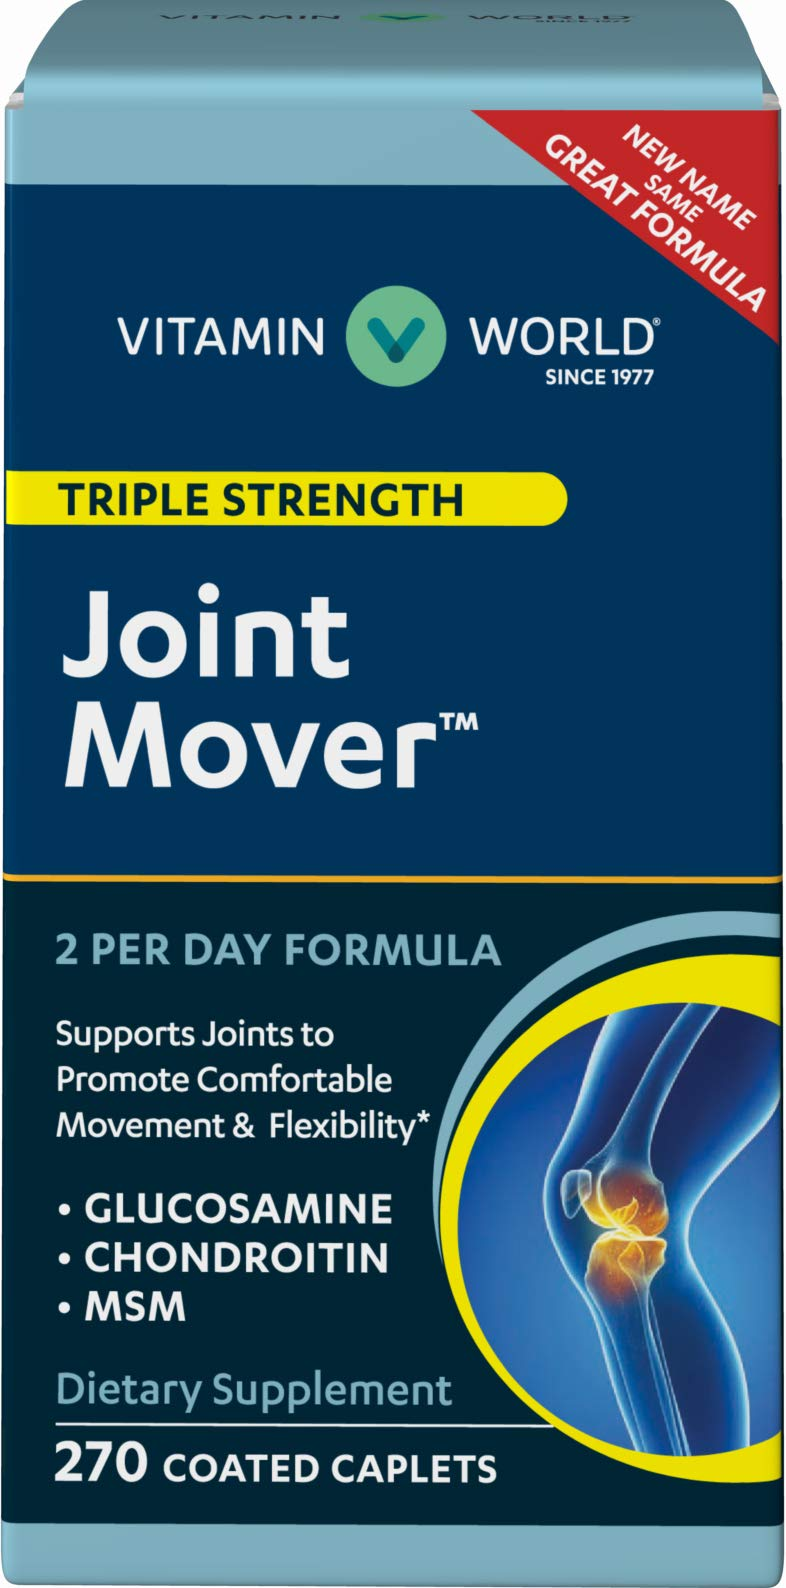 Vitamin World Joint Mover 270 Coated Caplets, Triple Strength, Glucosamine, MSM, Chondroitin, Contributes to Joint Comfort and Mobility, Joint Health, Coated, Gluten Free